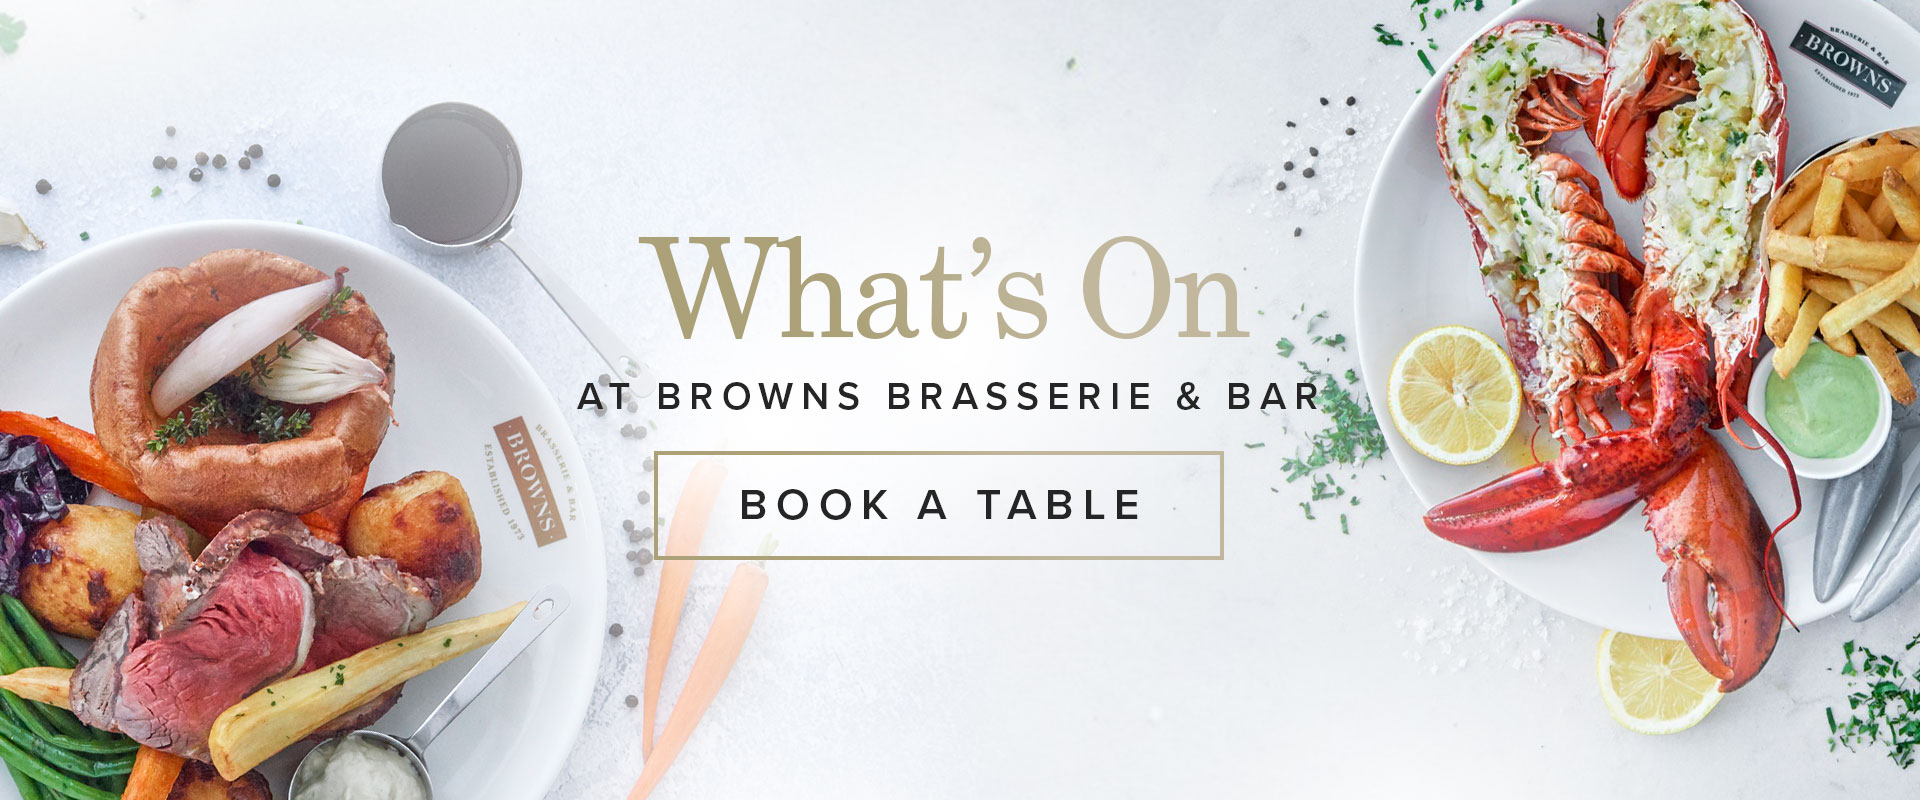 What's on at Browns Glasgow | Browns